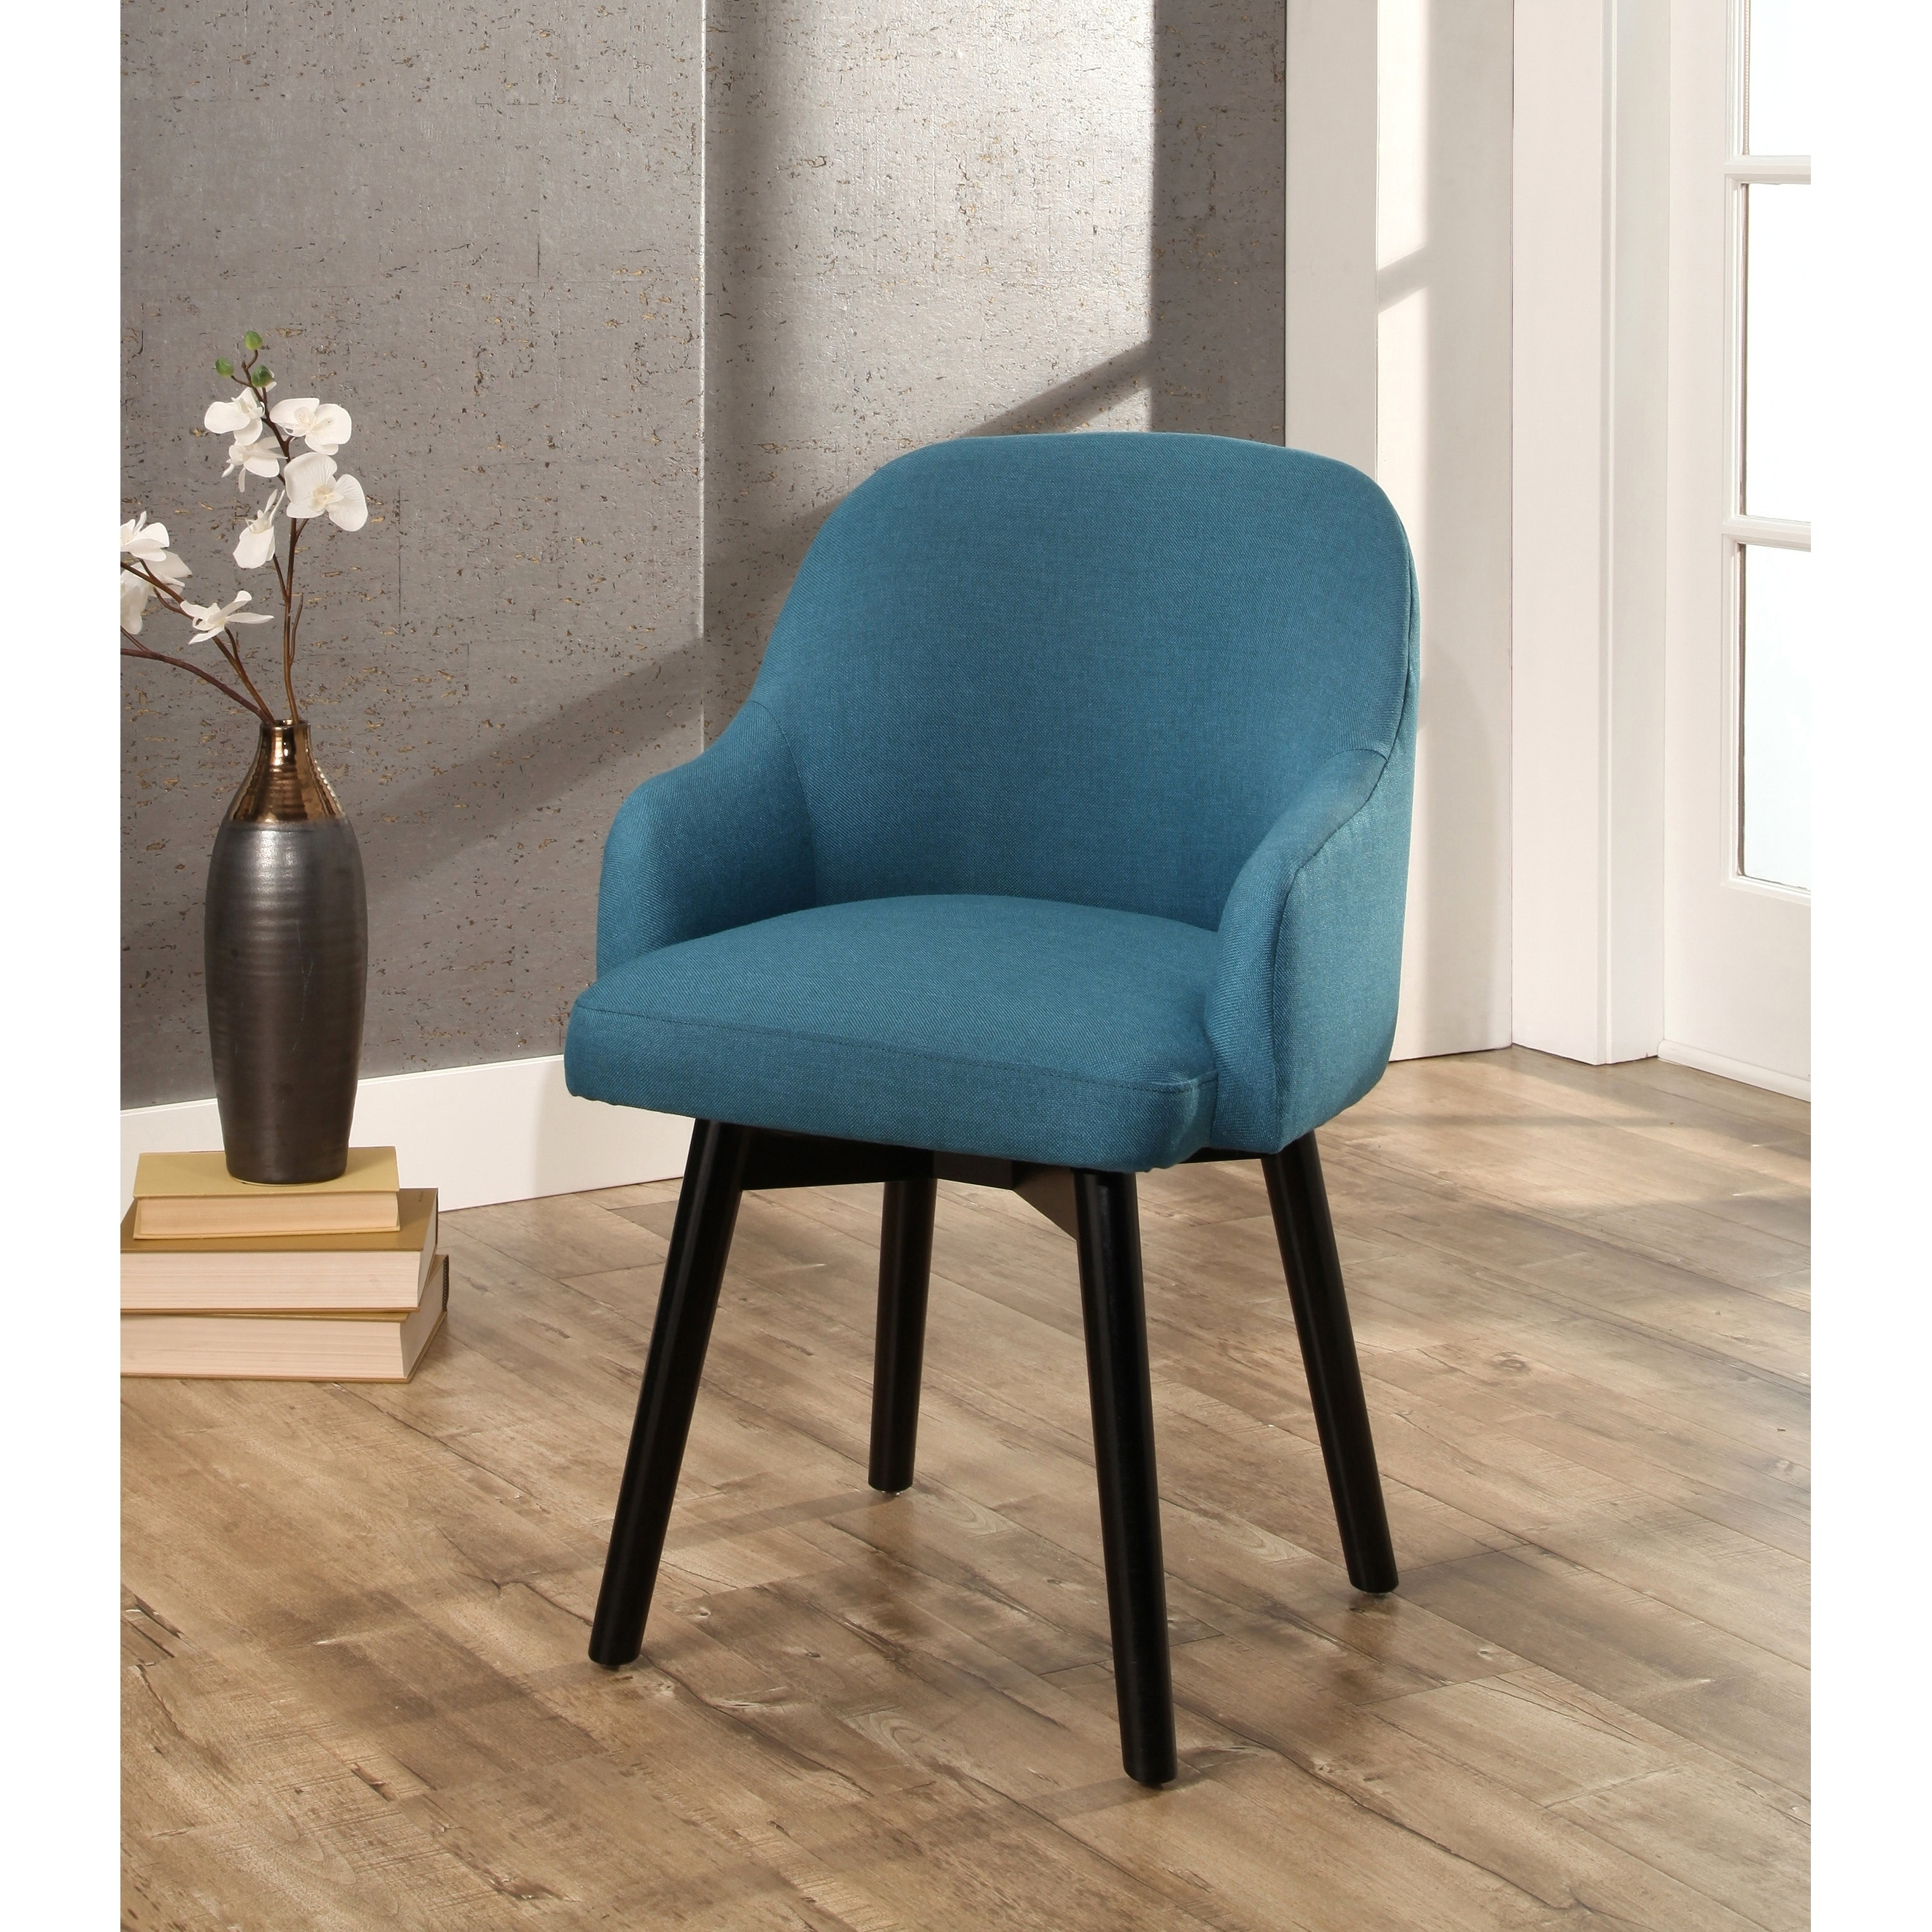 Shop Abbyson Abbott Upholstered Swivel Dining Chair - On Sale - Free ...